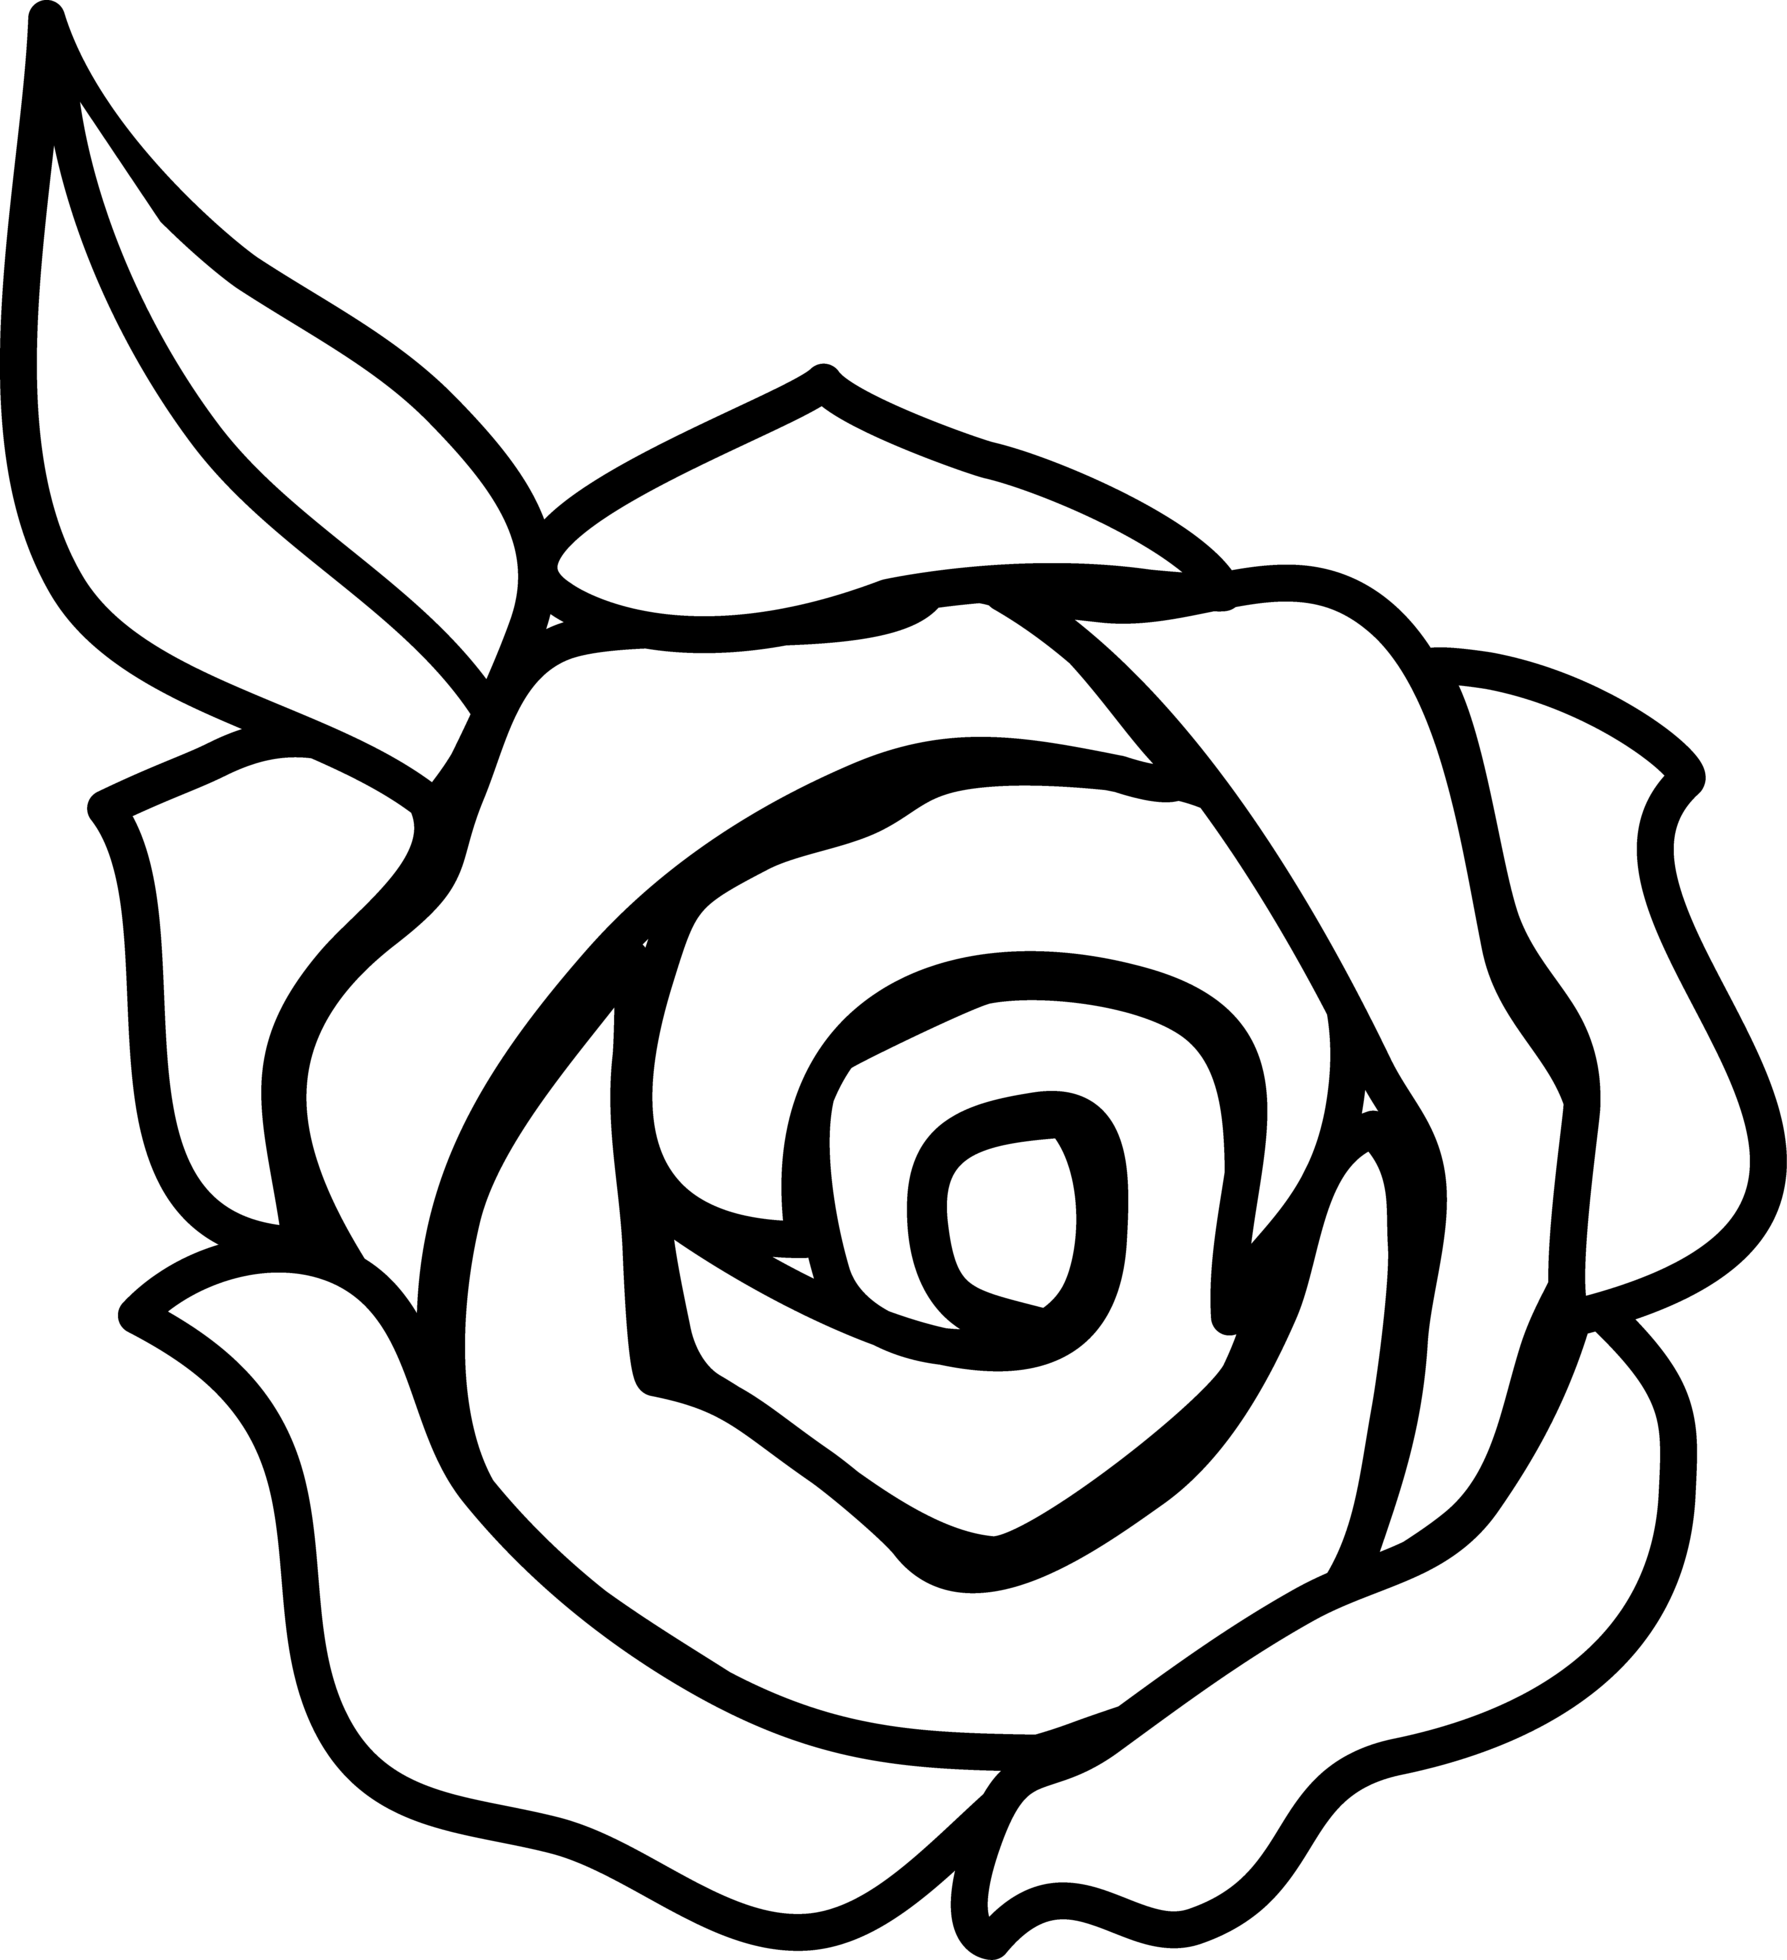 line drawing roses at getdrawings com free for personal use line rh getdrawings com free rose clipart vector free rose clip art images